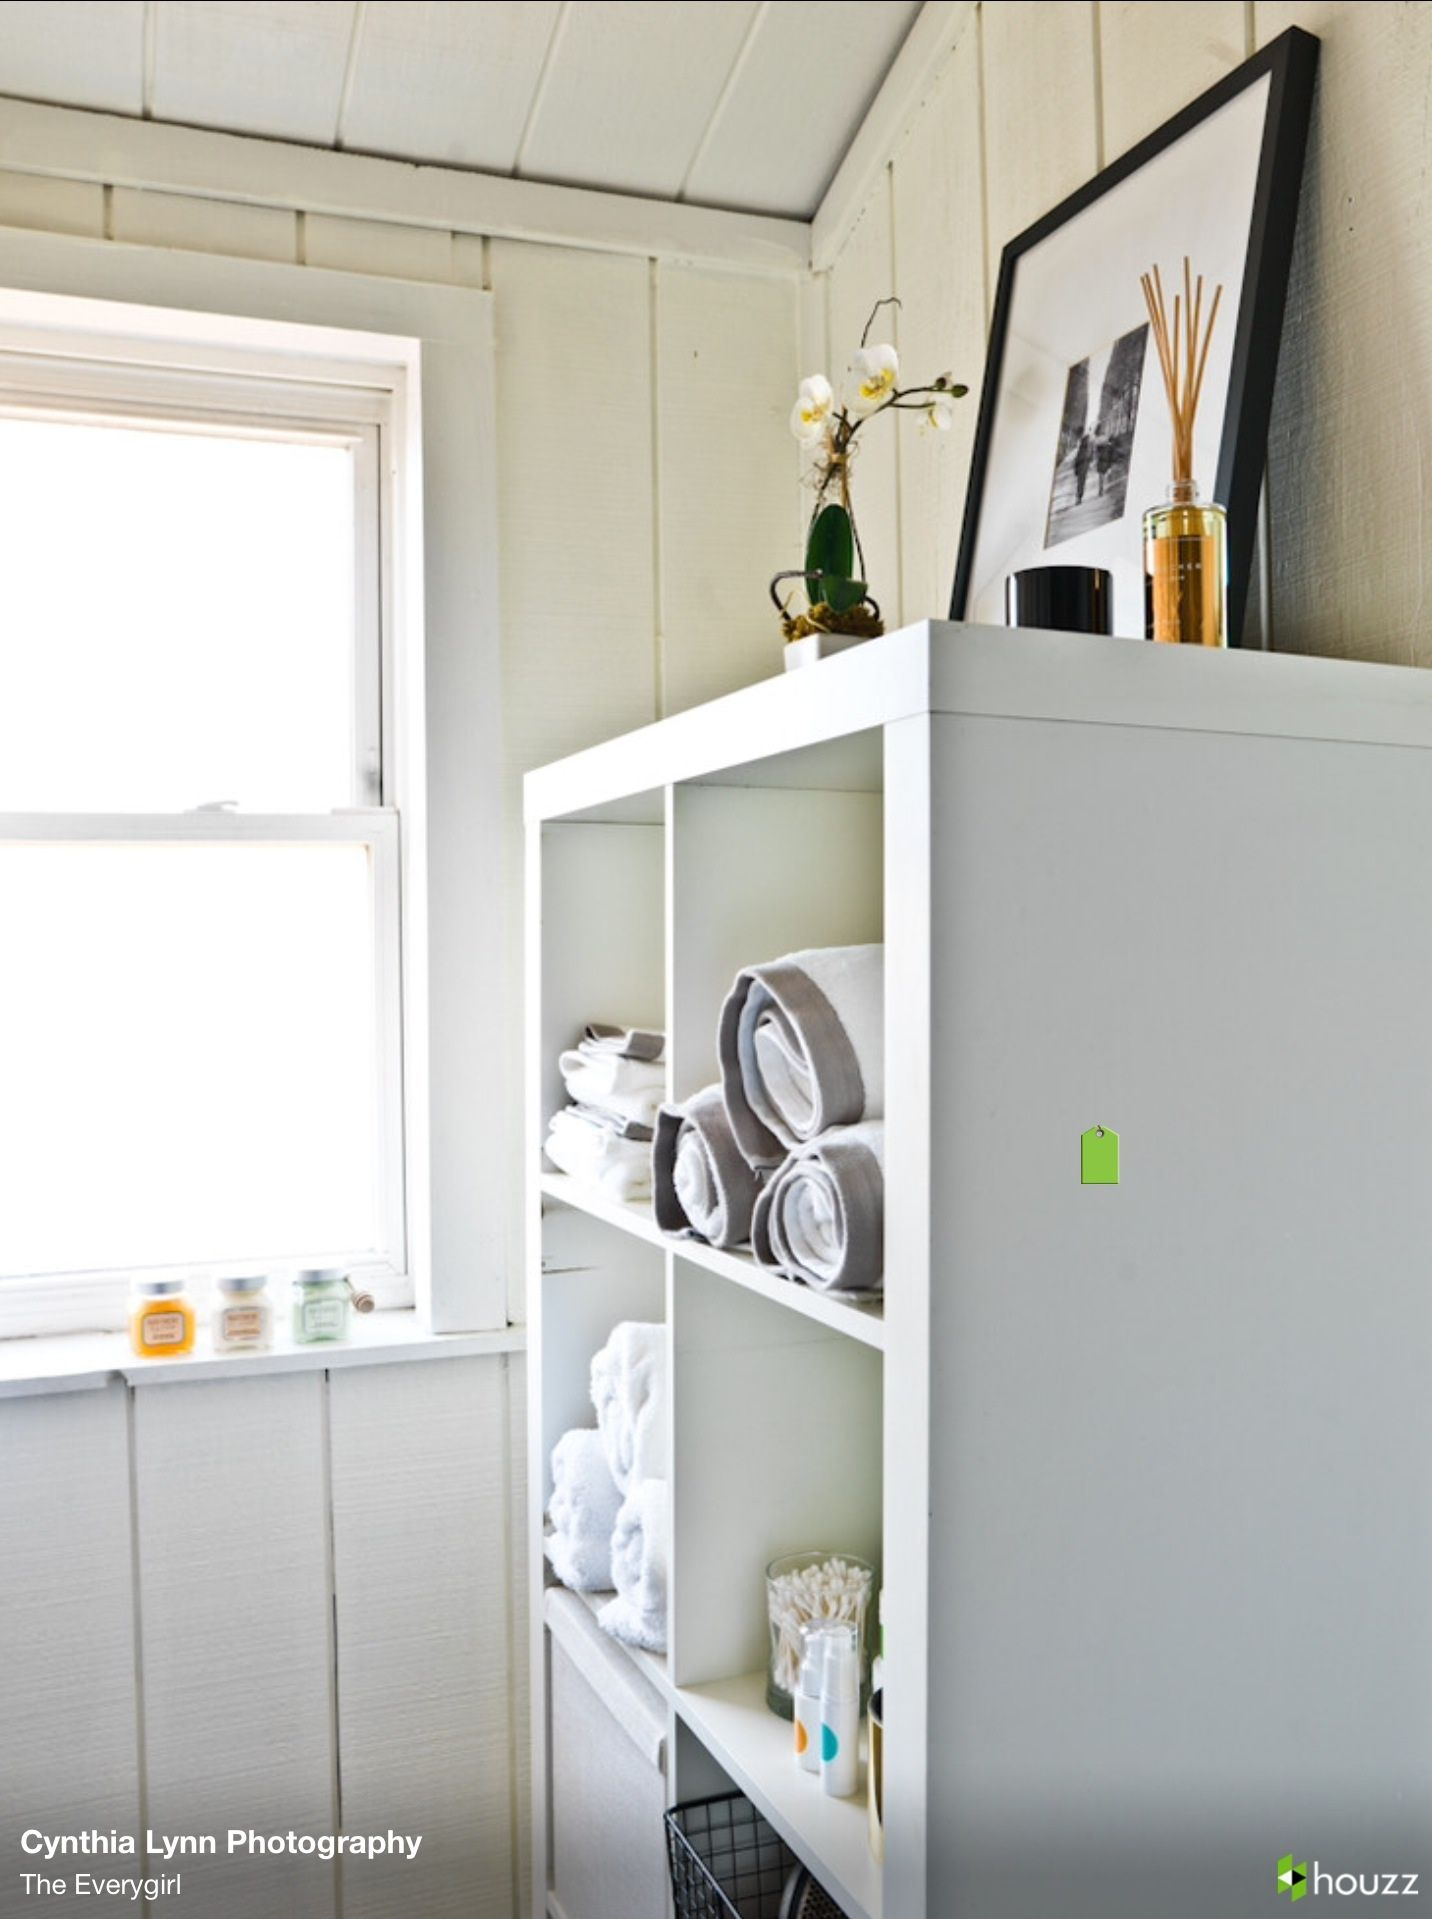 Bathroom Storage Solution Cabinets Drawers Cubby Holes Organized Organization Hanging